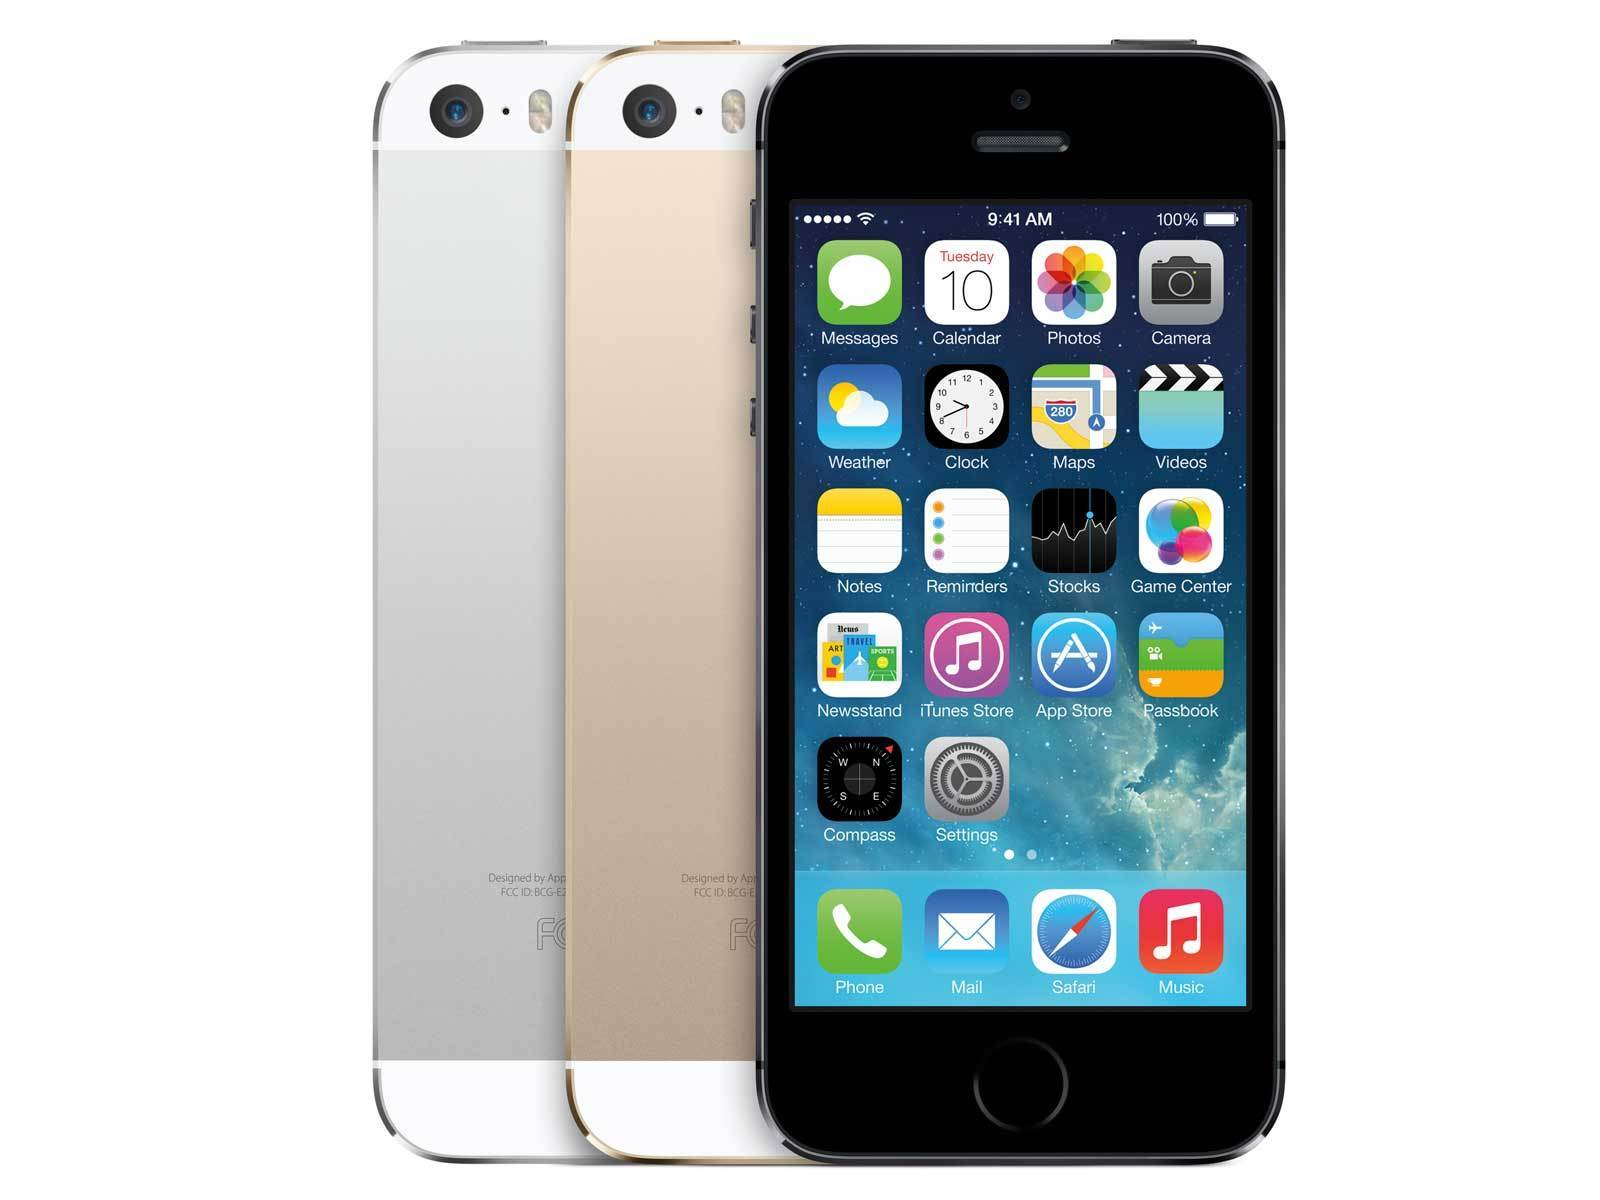 does iphone 5s have wifi calling apple iphone 5s a1533 32gb gsm unlocked 4g lte ios 18385